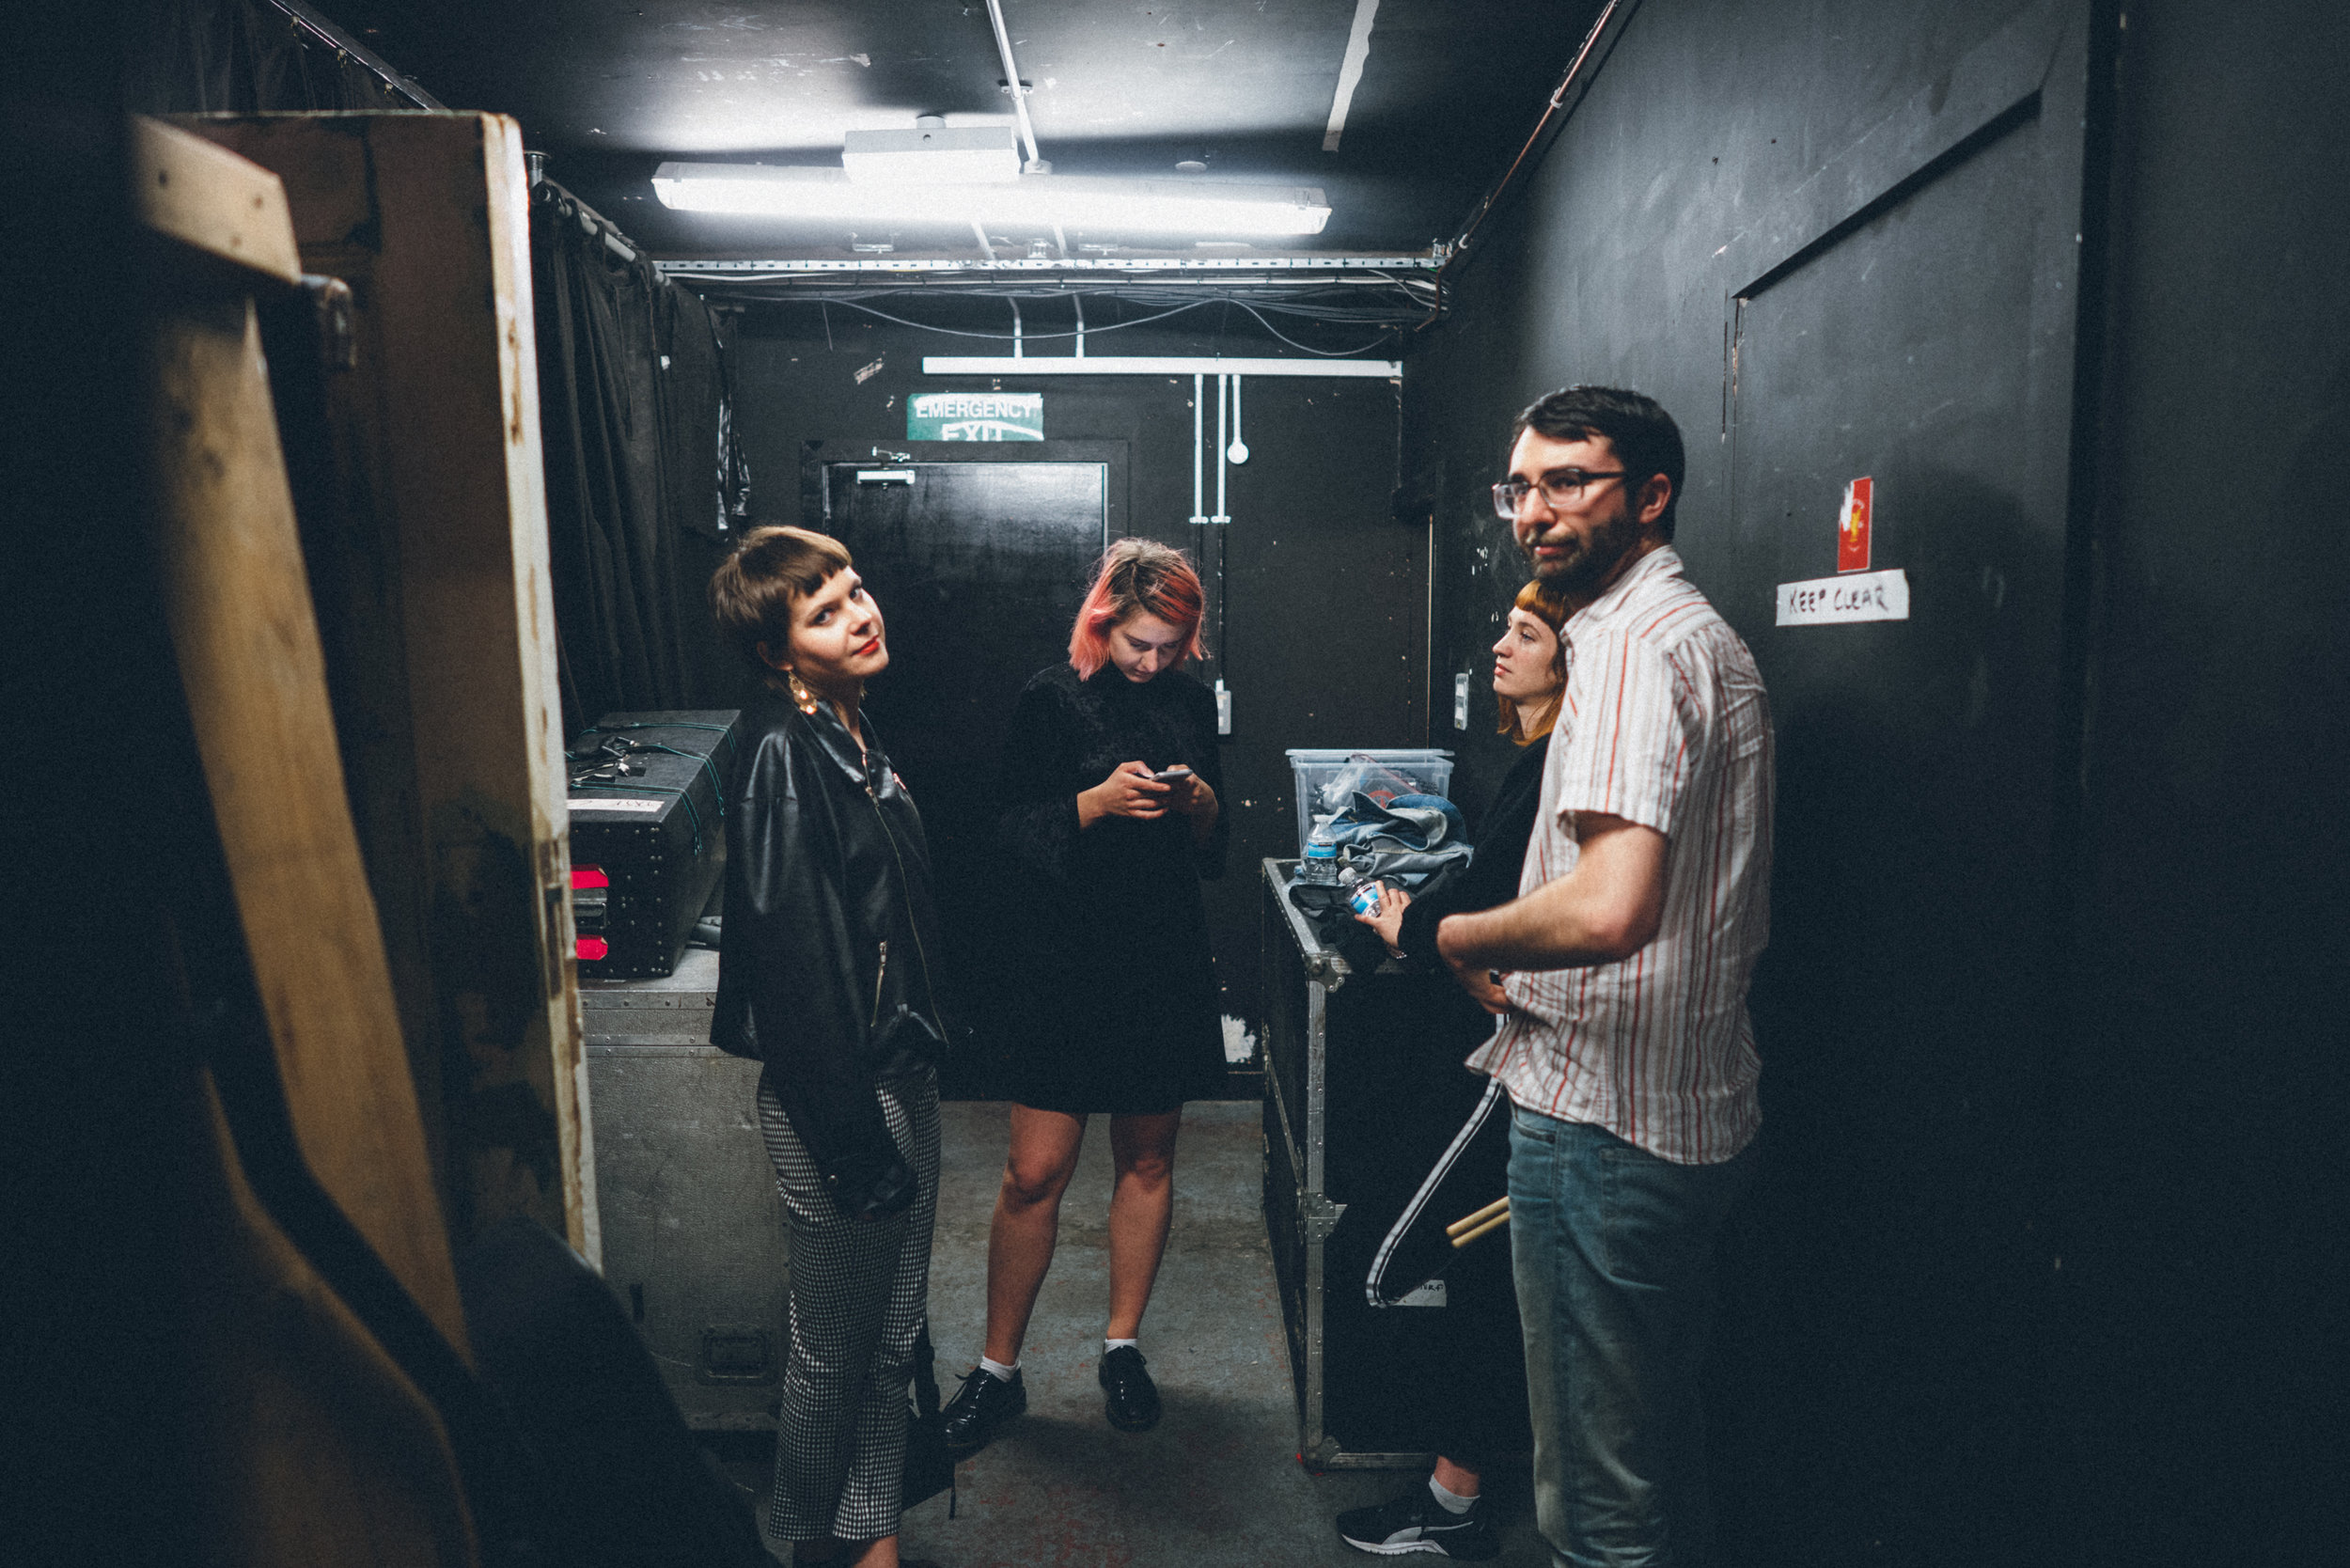 Here's us about to go on stage in Liverpool, captured by the wonderful Rowan Allen (follow her on instagram, she makes the best stories @rowanallen)